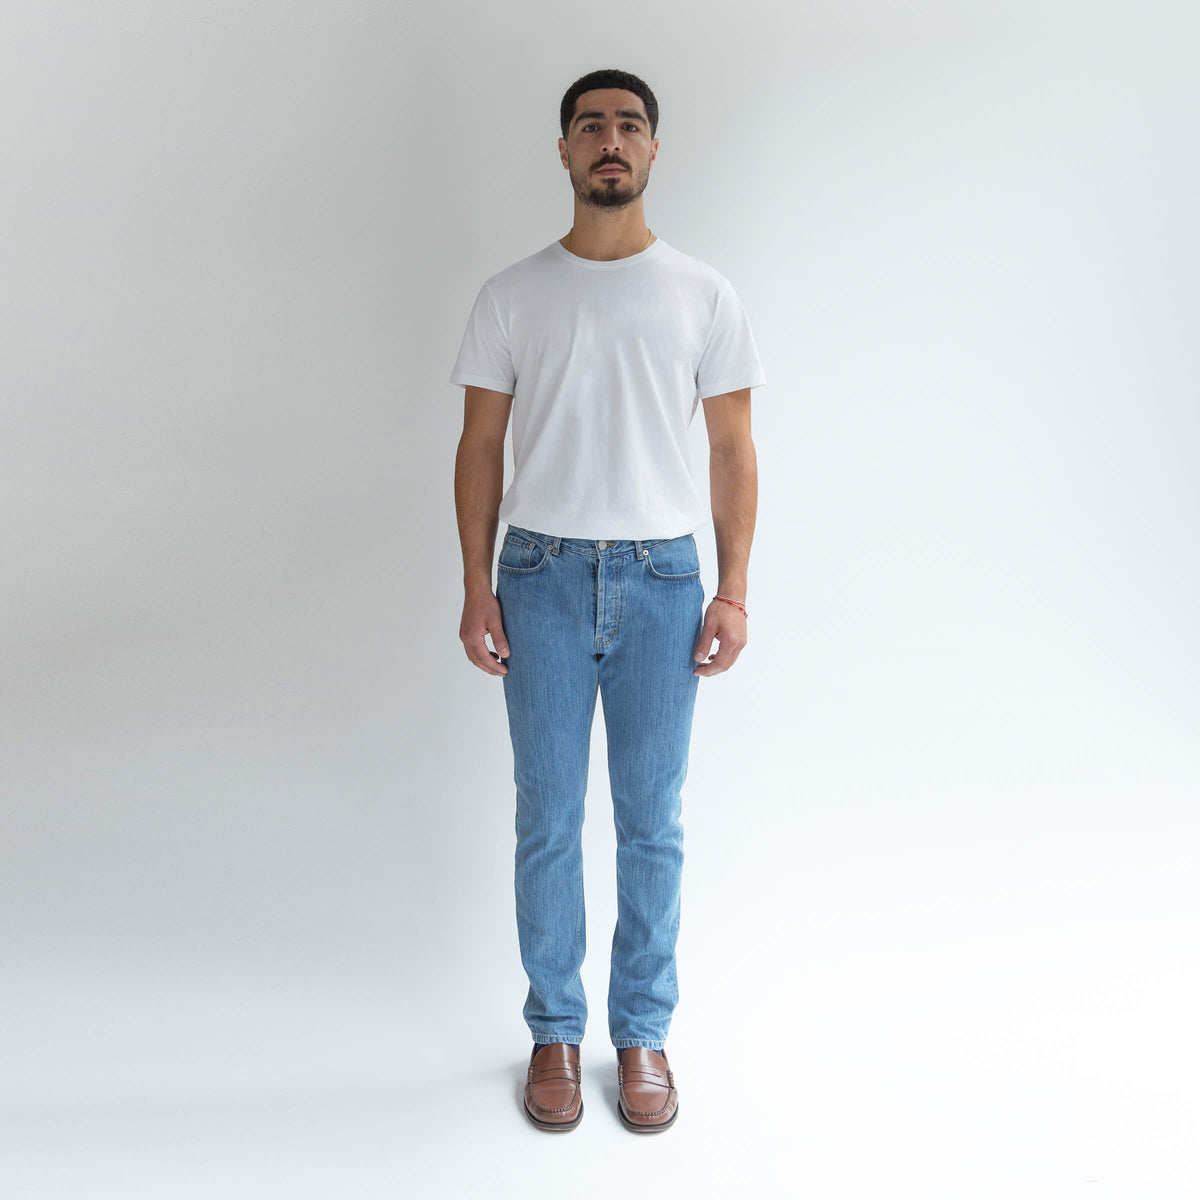 Straight Jeans in Denim made from organic cotton - Front Men - Only Men